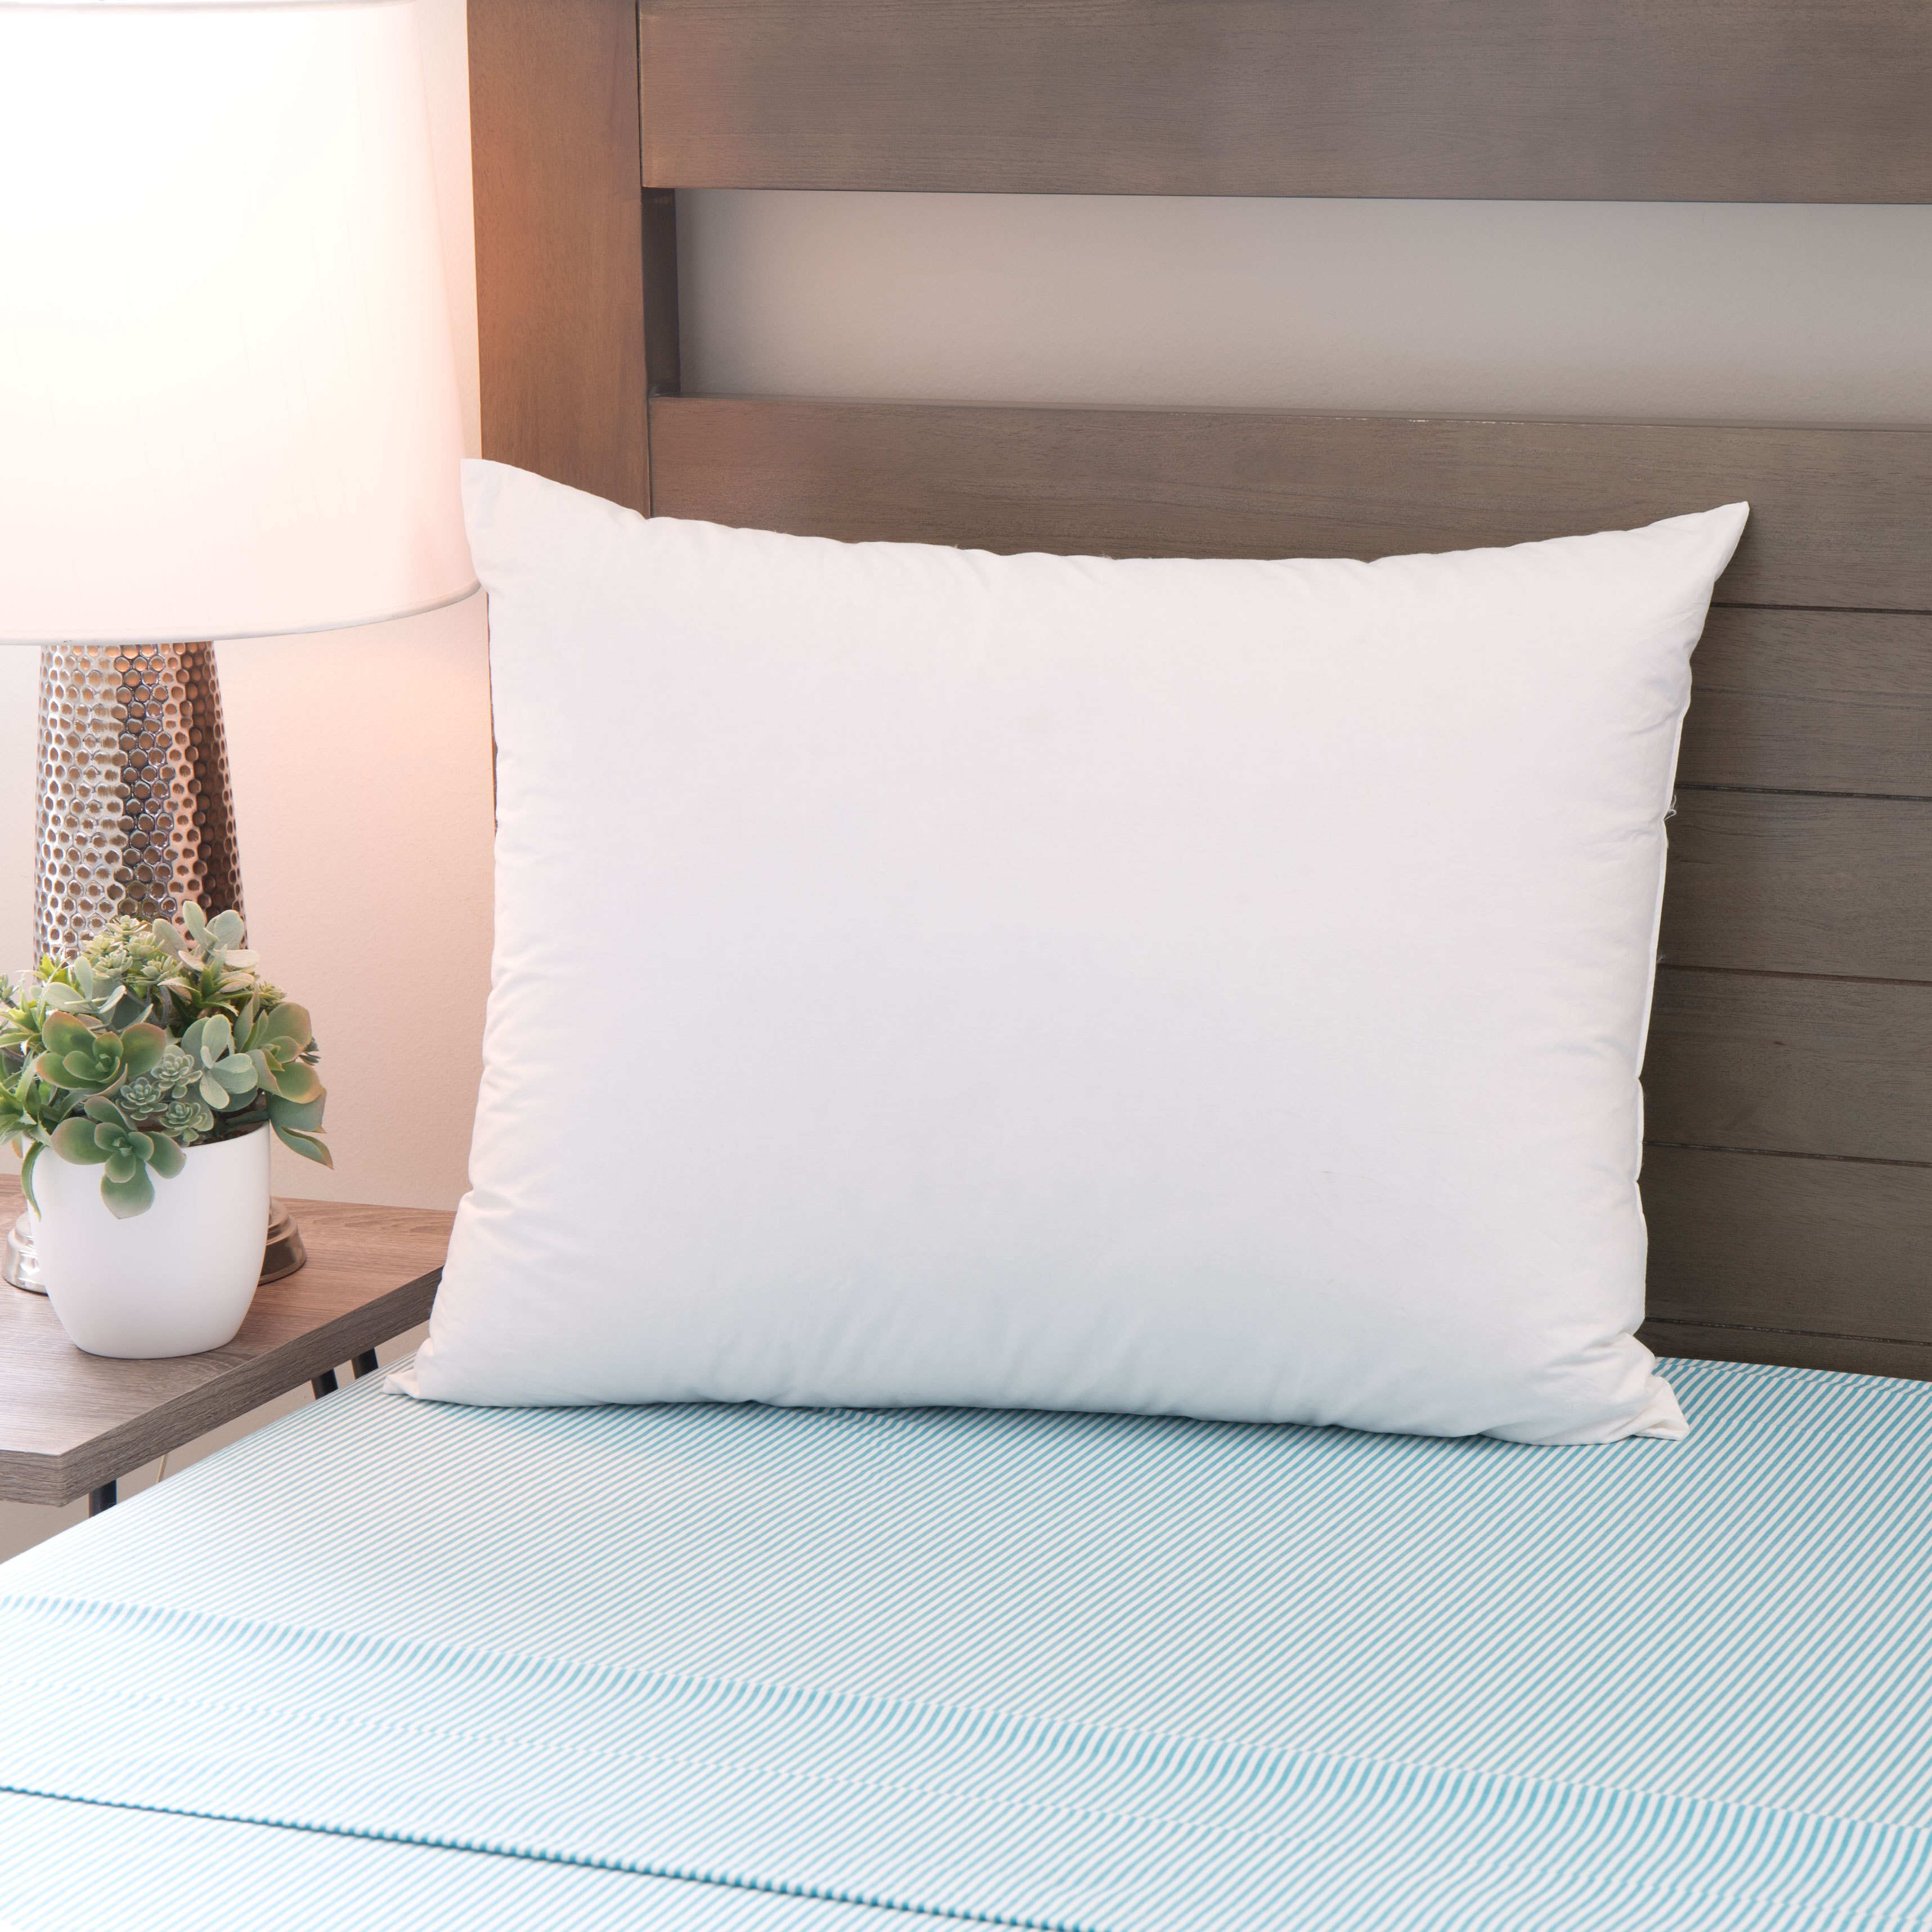 free choice overstock bedroom down premier shipping set bedding pillows over like density orders product bath on personal of